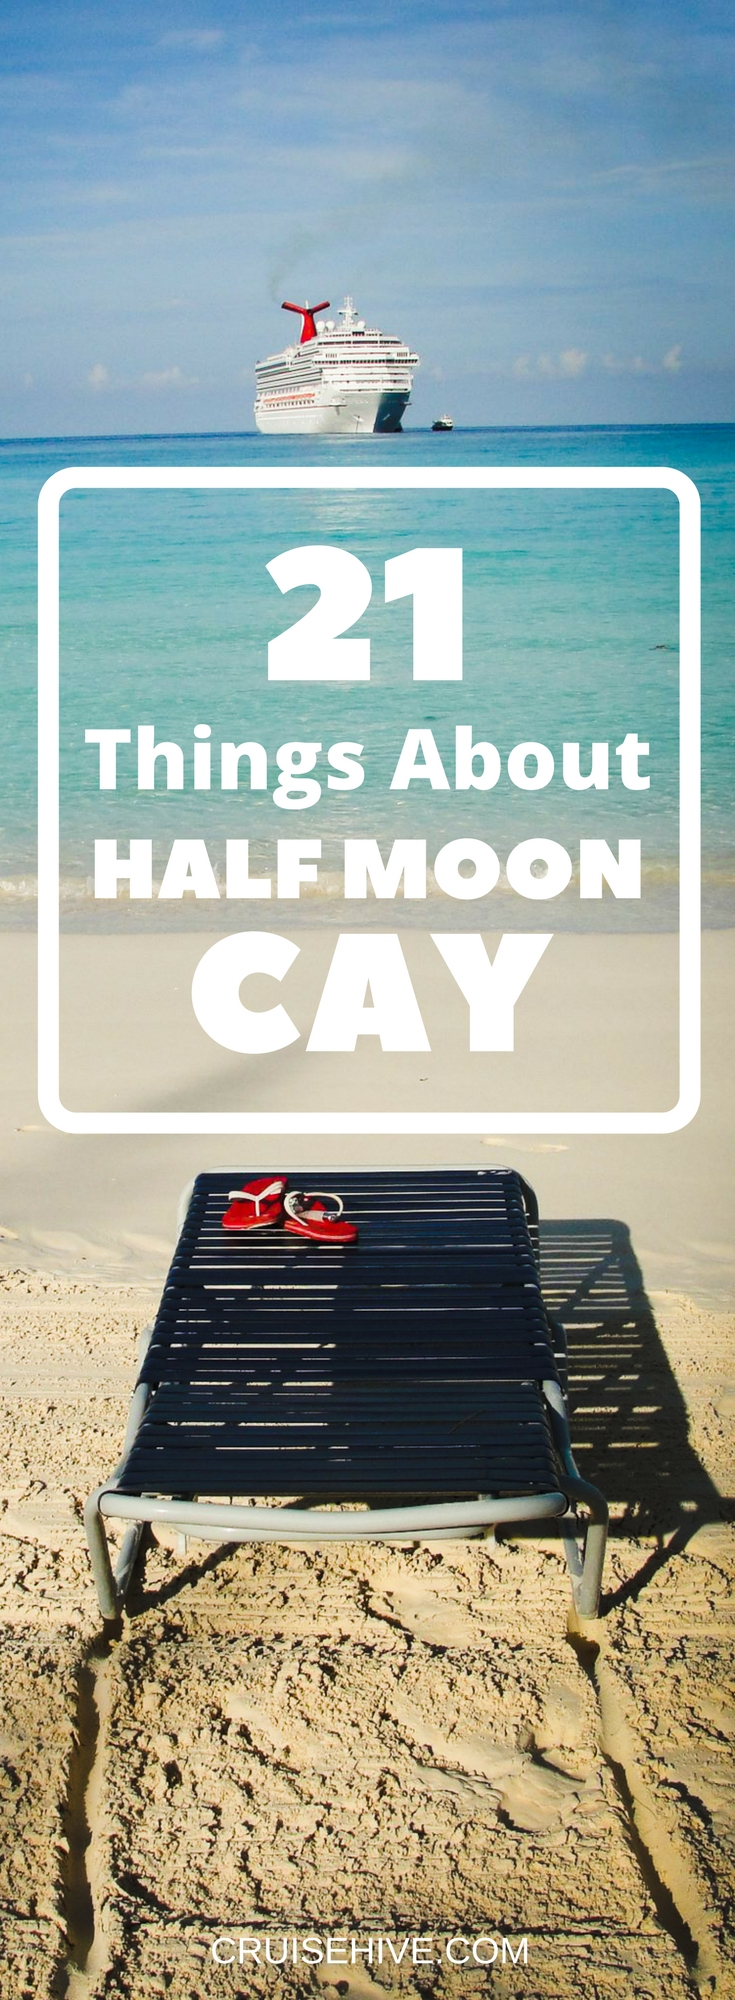 21 Things About Half Moon Cay Carnival S Private Island